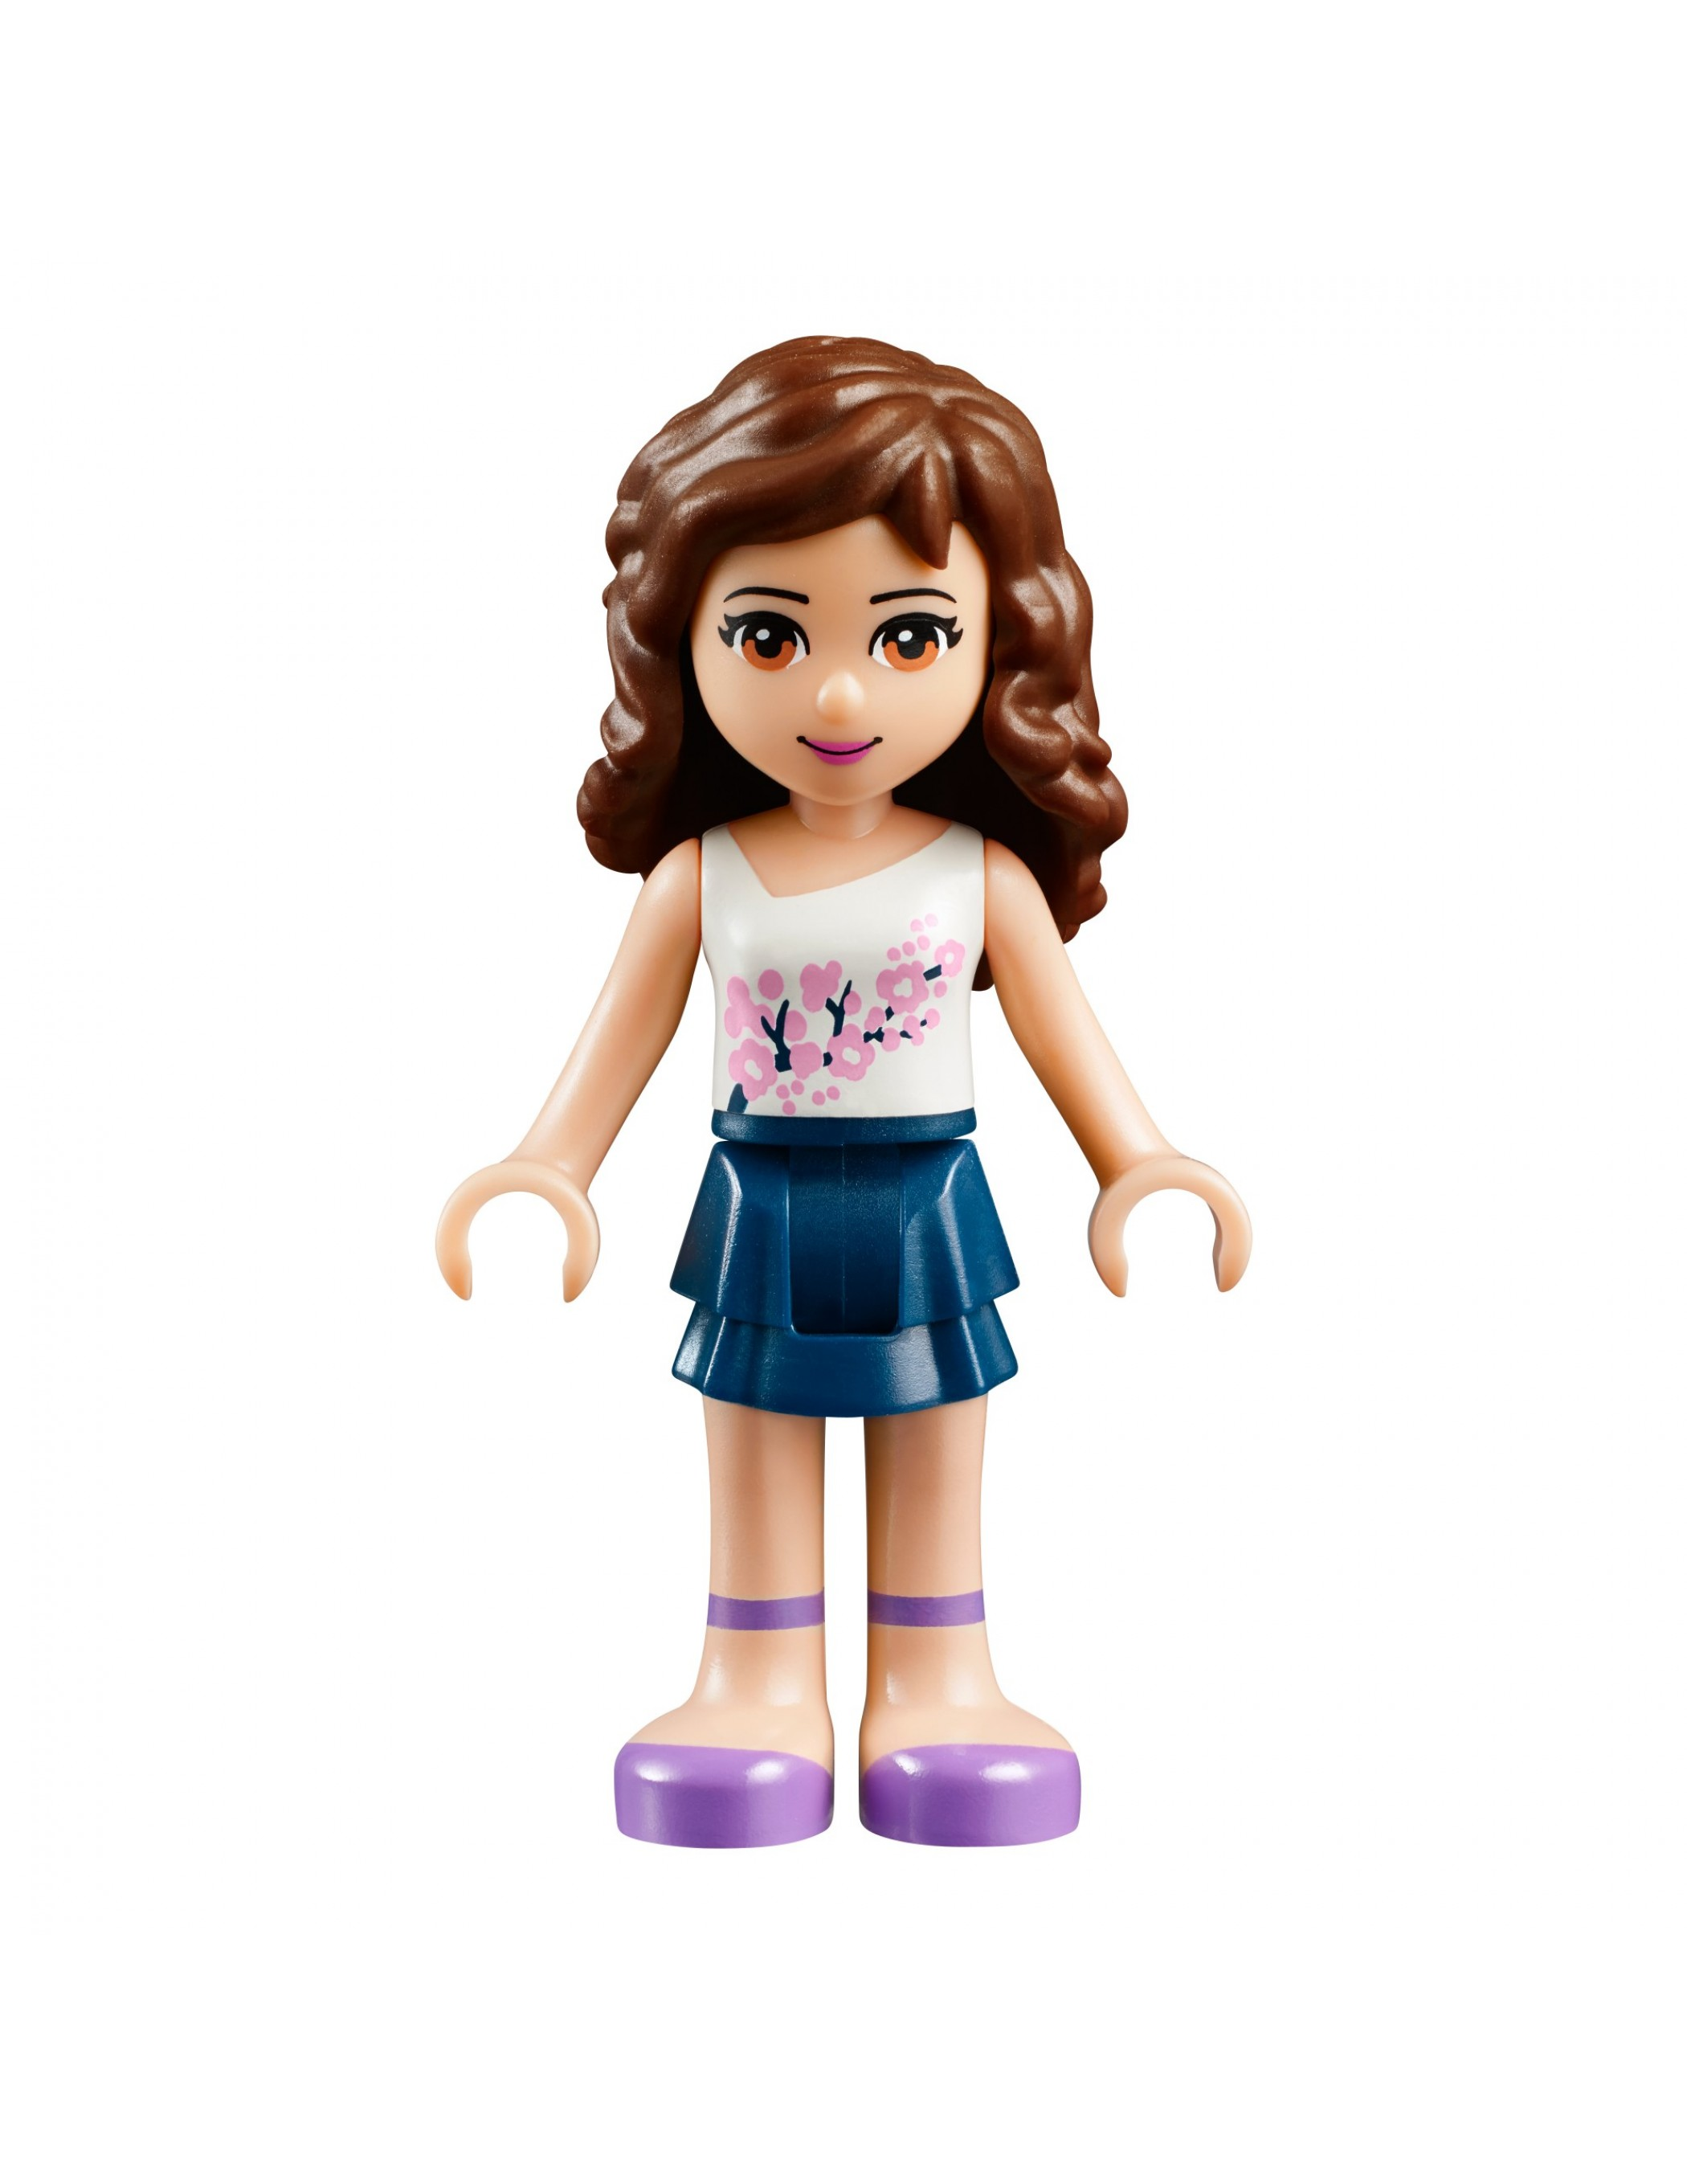 LEGO Friends Olivia Watch With Minifigure Best